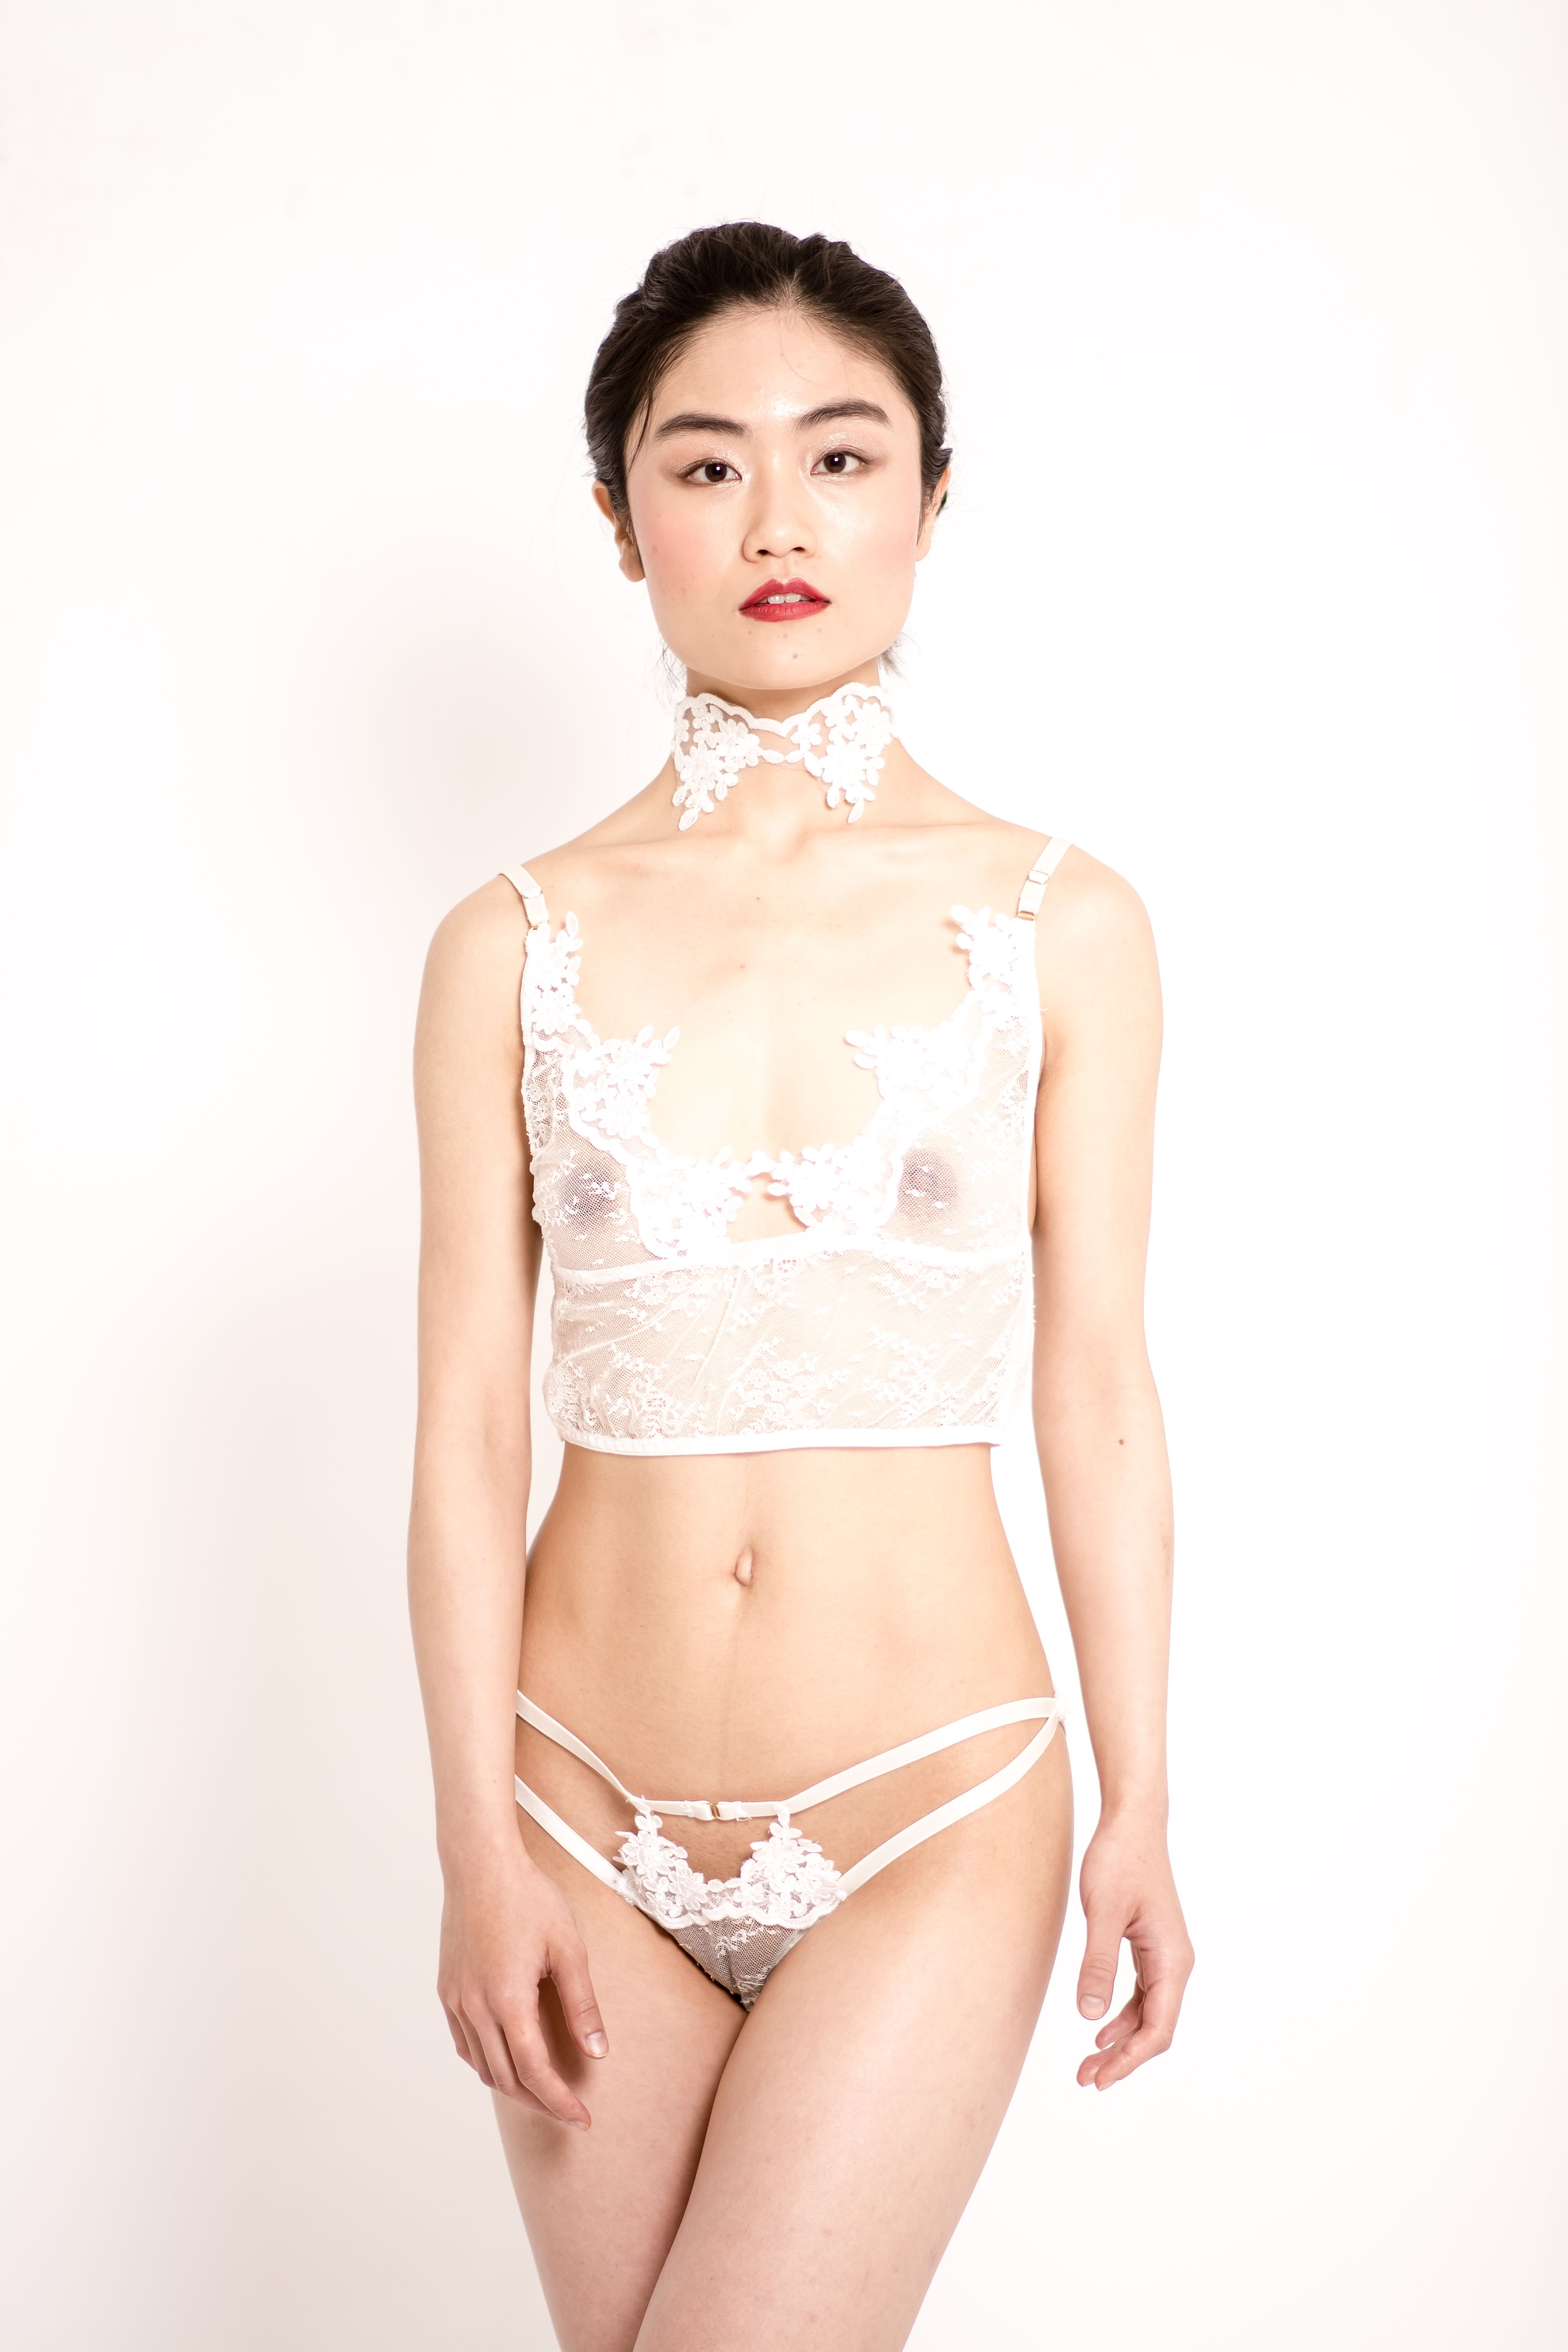 9de52ac439f Sofia sheer white lace Made in Paris and ivory embroidery lace lingerie set.  For the sexiest bridal look. Ivory embroidery lace choker as detail. ...